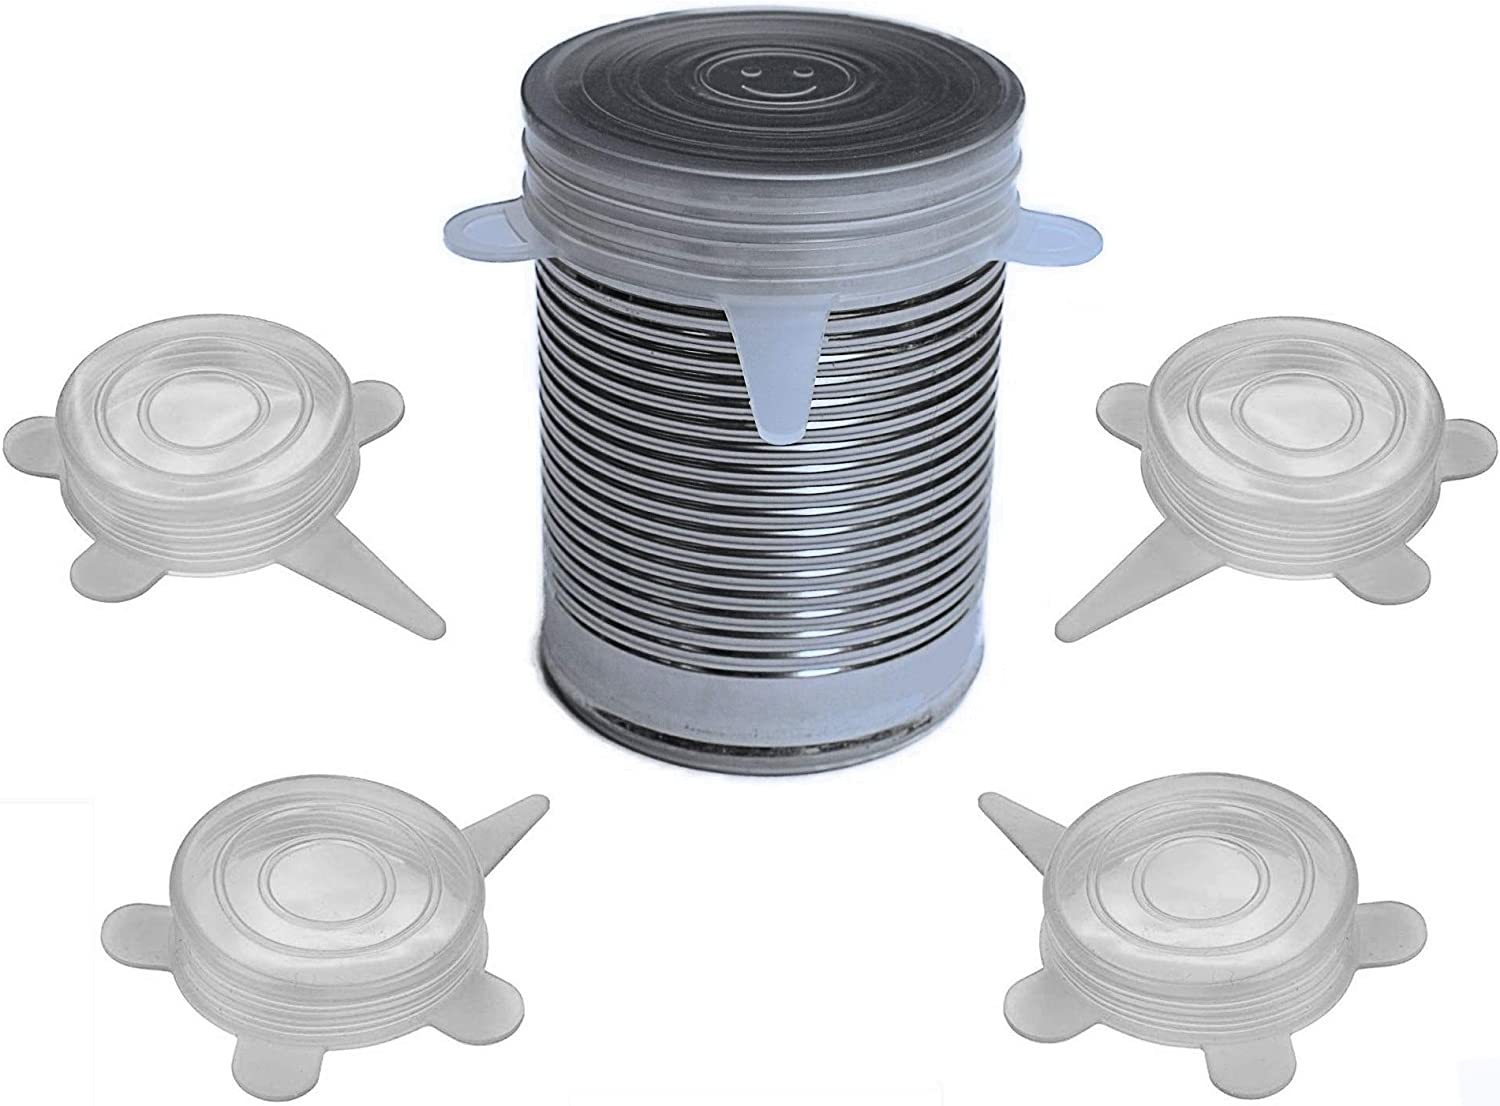 Pet and Human Food Can Lids - 4 Pack - Stretchable Silicone Covers for Cat and Dog Canned Food Storage - Universal Fitting Tops for Small Sized Cans - Keeps Food Fresh